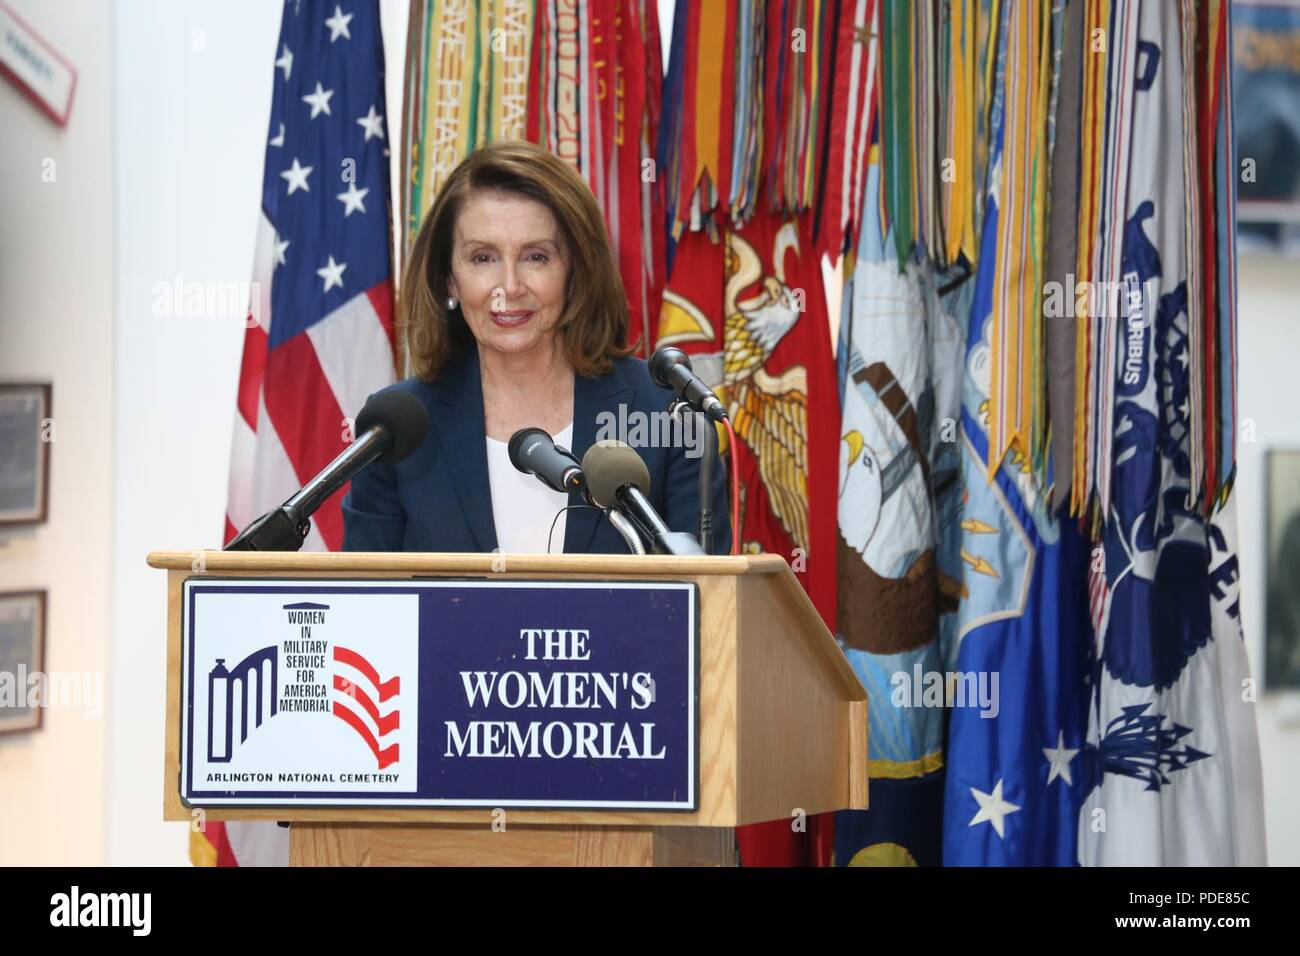 Representative Nancy P. Pelosi, the minority leader of the U.S. House of Representatives, delivers a speech at the Women in the Military Wreath Laying Ceremony in Arlington, Virginia, May 17, 2018. The ceremony, which was held at the Women in Military Service for America Memorial, honored our nation's servicewomen and women veterans for their courage and achievements, and remembered women who died while on duty serving the United States. - Stock Image